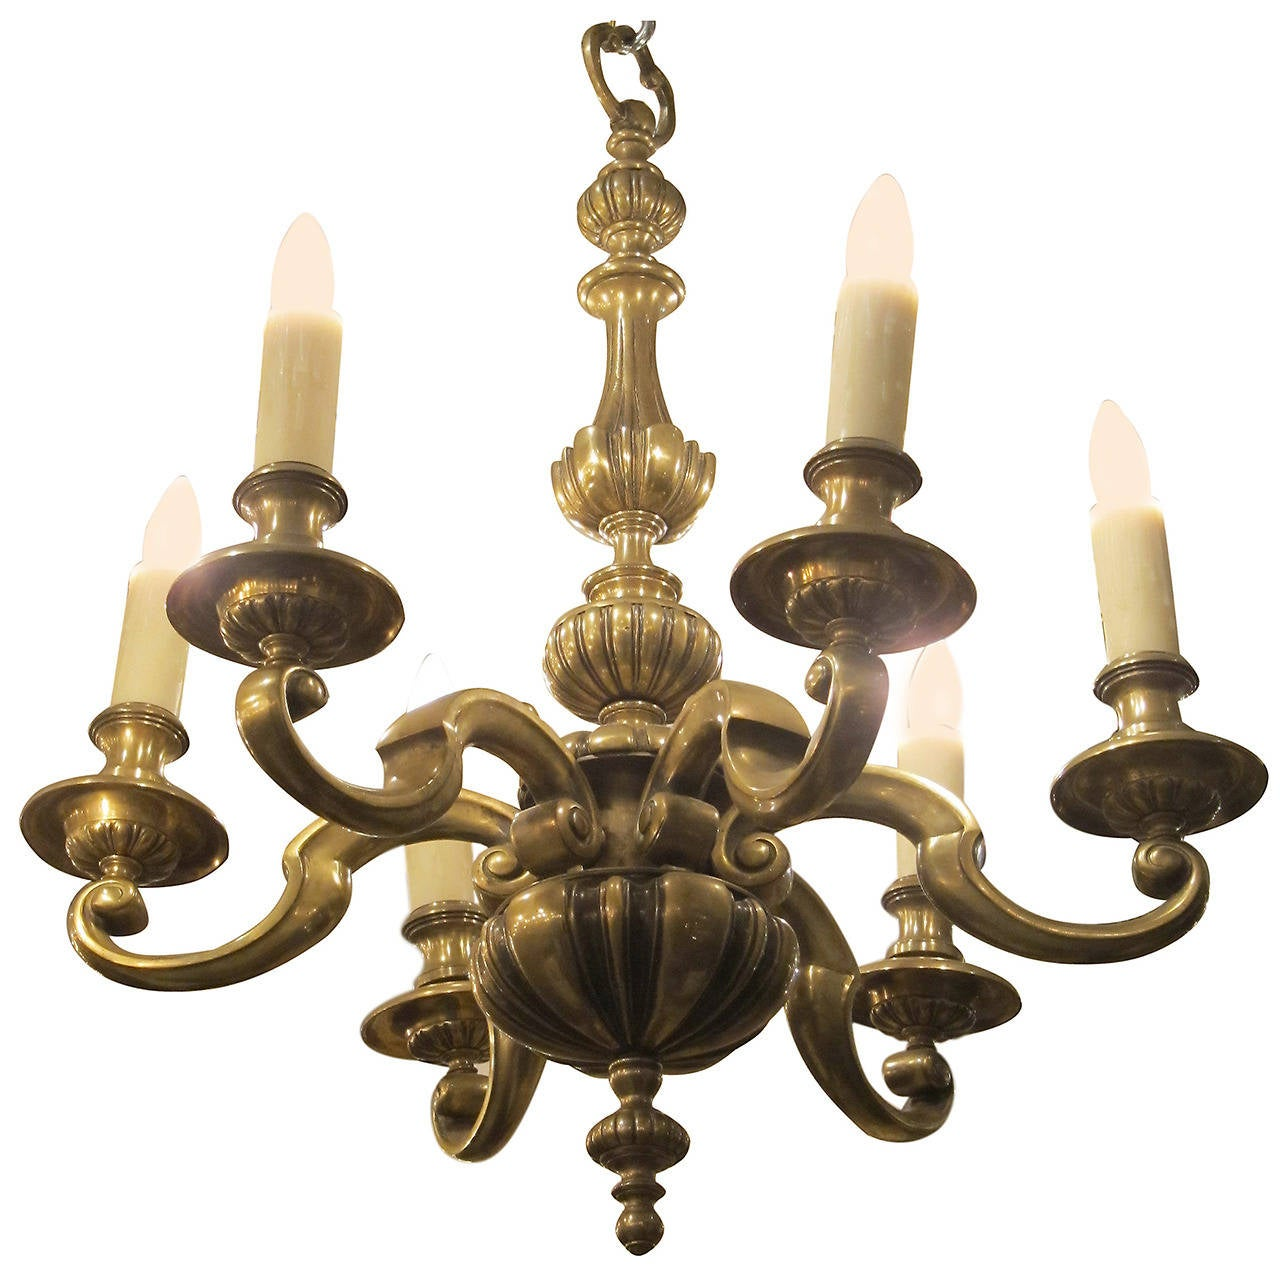 1920s english bronze georgian style six light chandelier for sale at 1stdibs - Lights and chandeliers ...